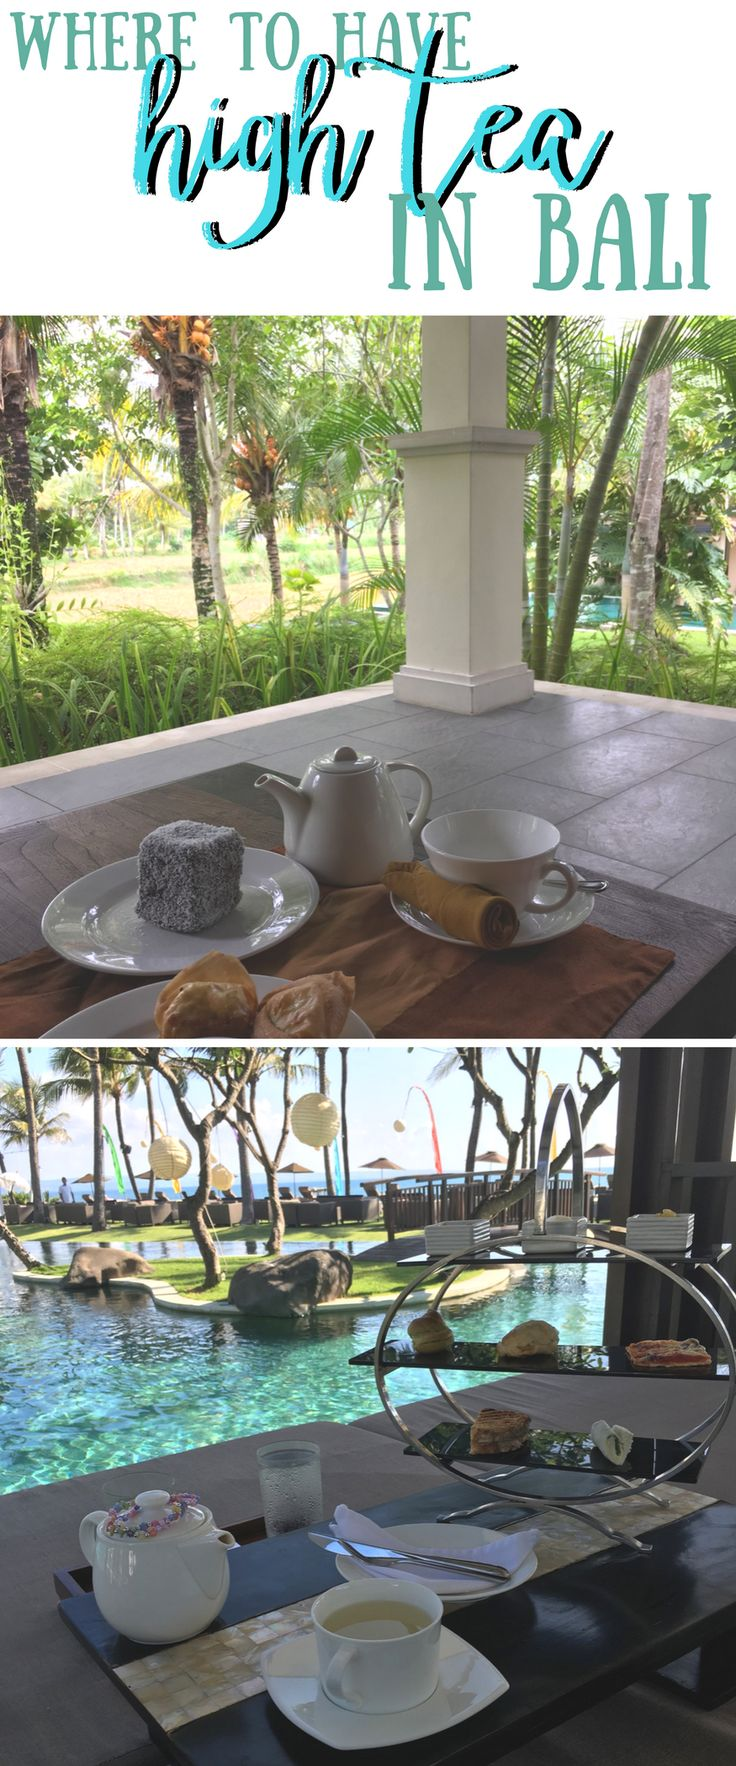 Looking for a unique experience in Bali? Why not high or afternoon tea? #hightea #afternoontea #bali #balitea #balieats